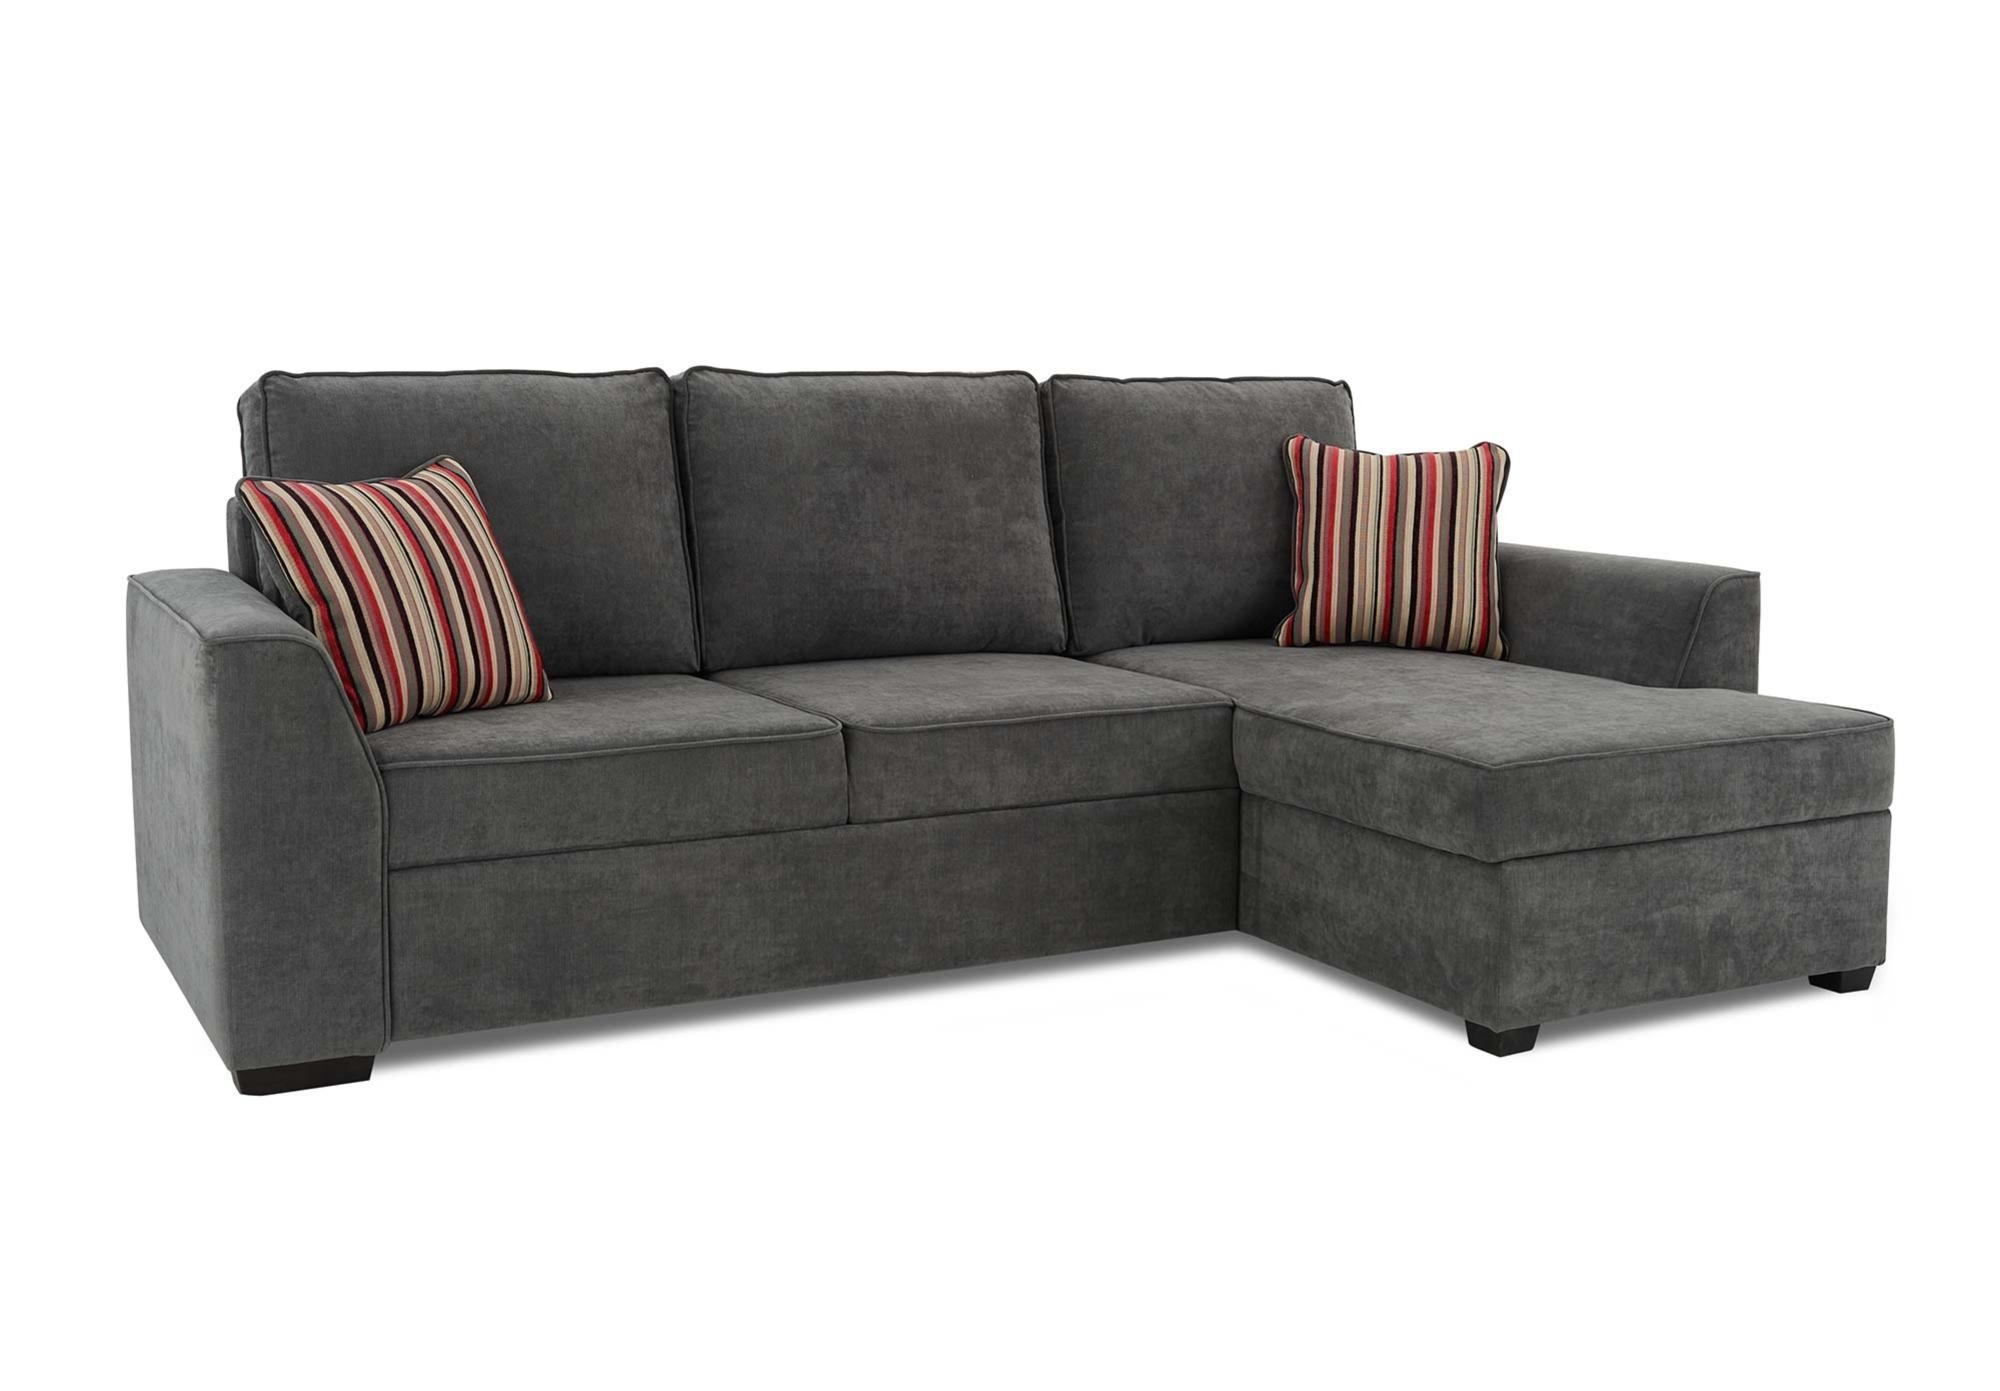 Nice Sofa Bed With Storage Chaise 405890 Sofa | Ciov Inside Sofa Beds With Storage Chaise (View 3 of 20)